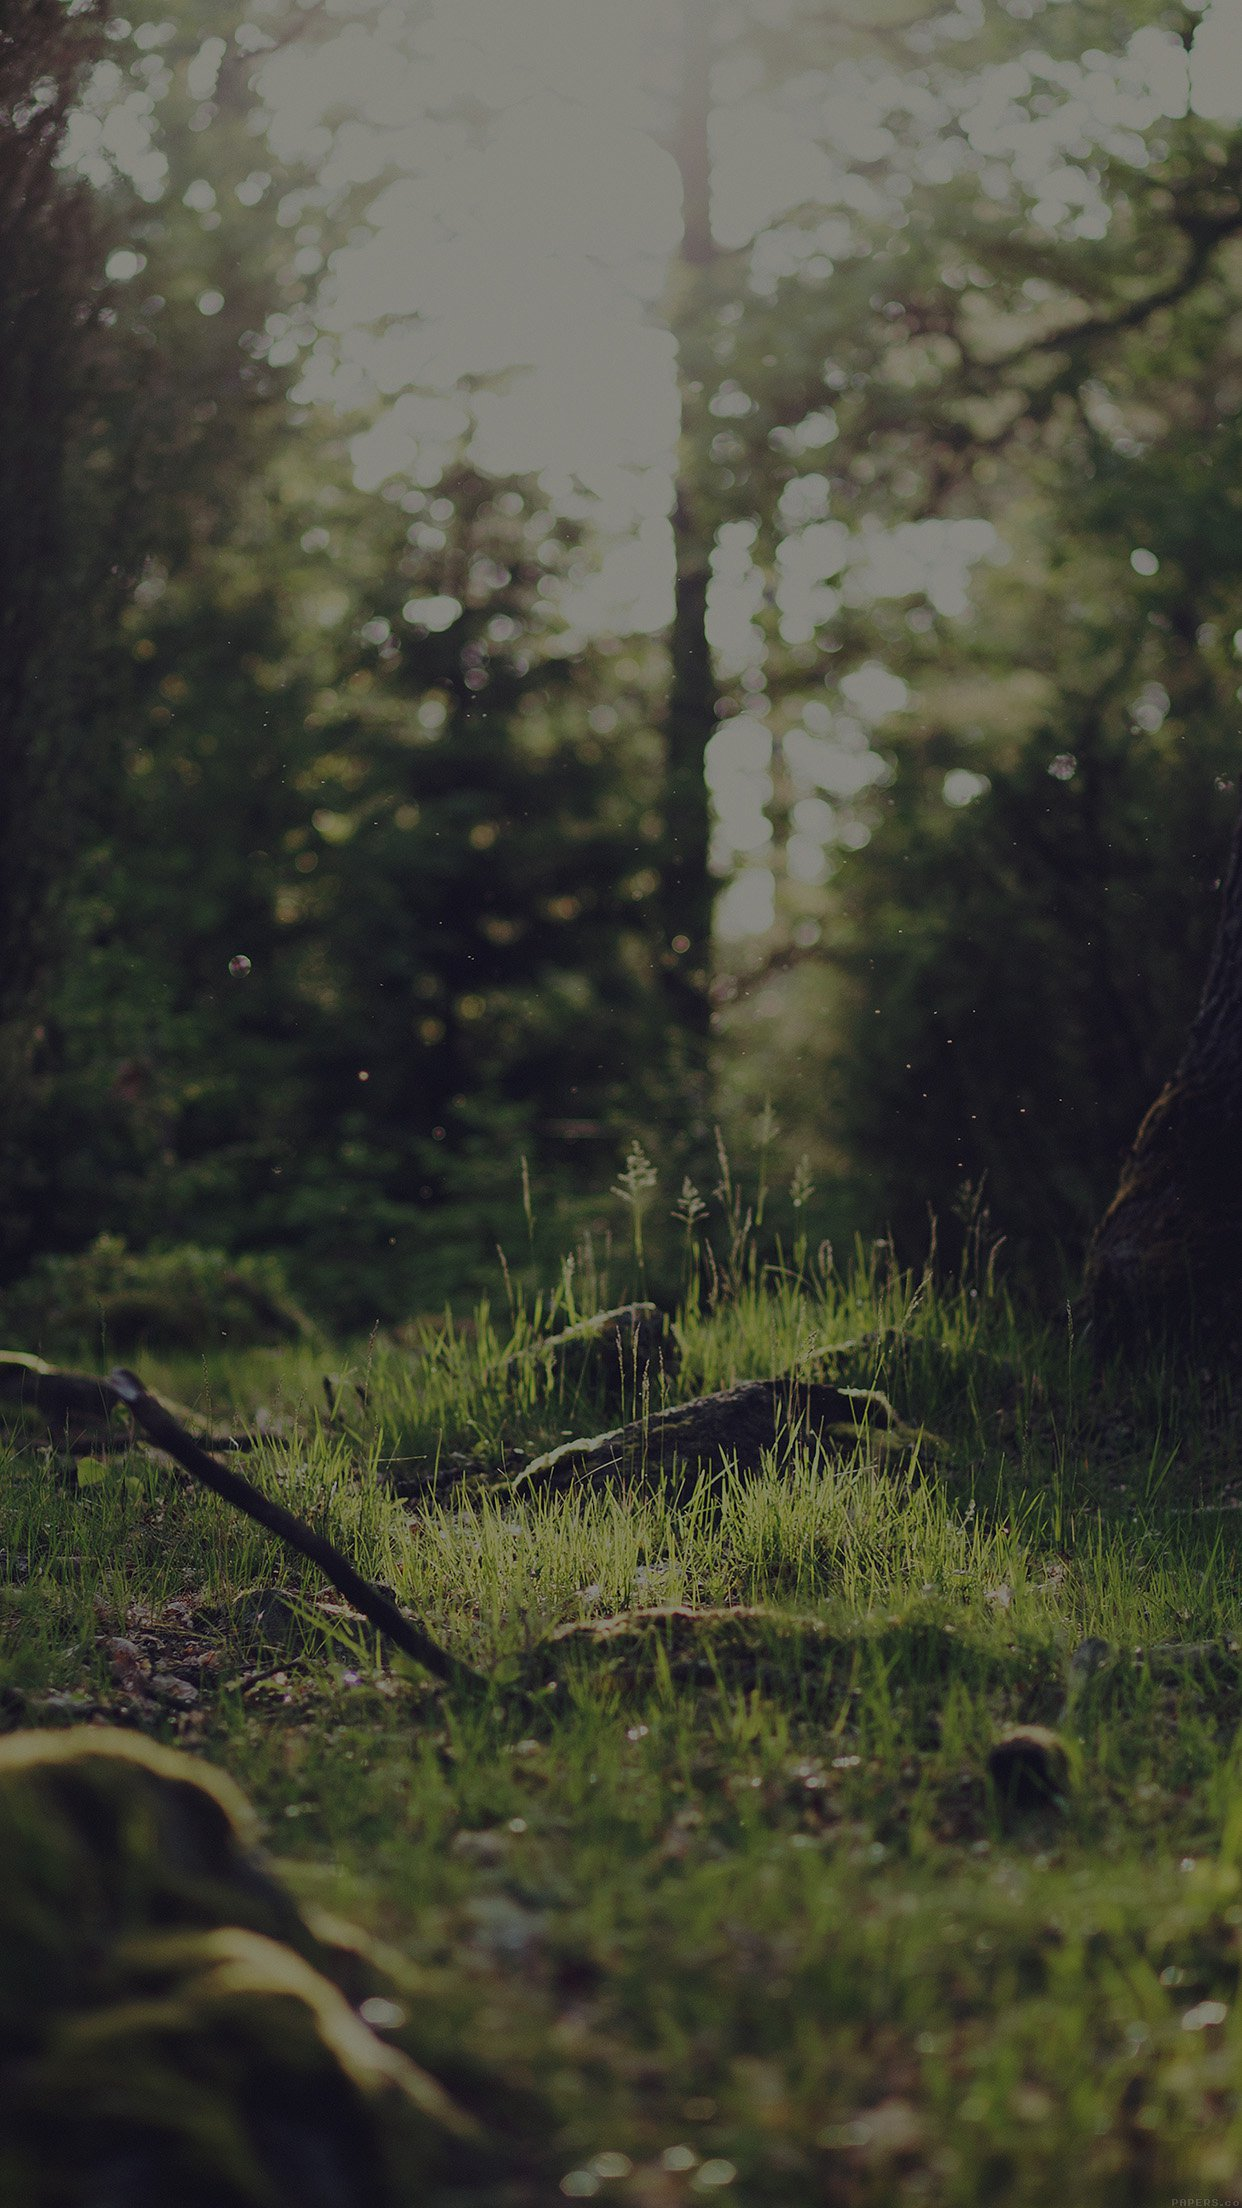 Forest Green Nature Tree Dark Jonas Nilsson Lee Android wallpaper